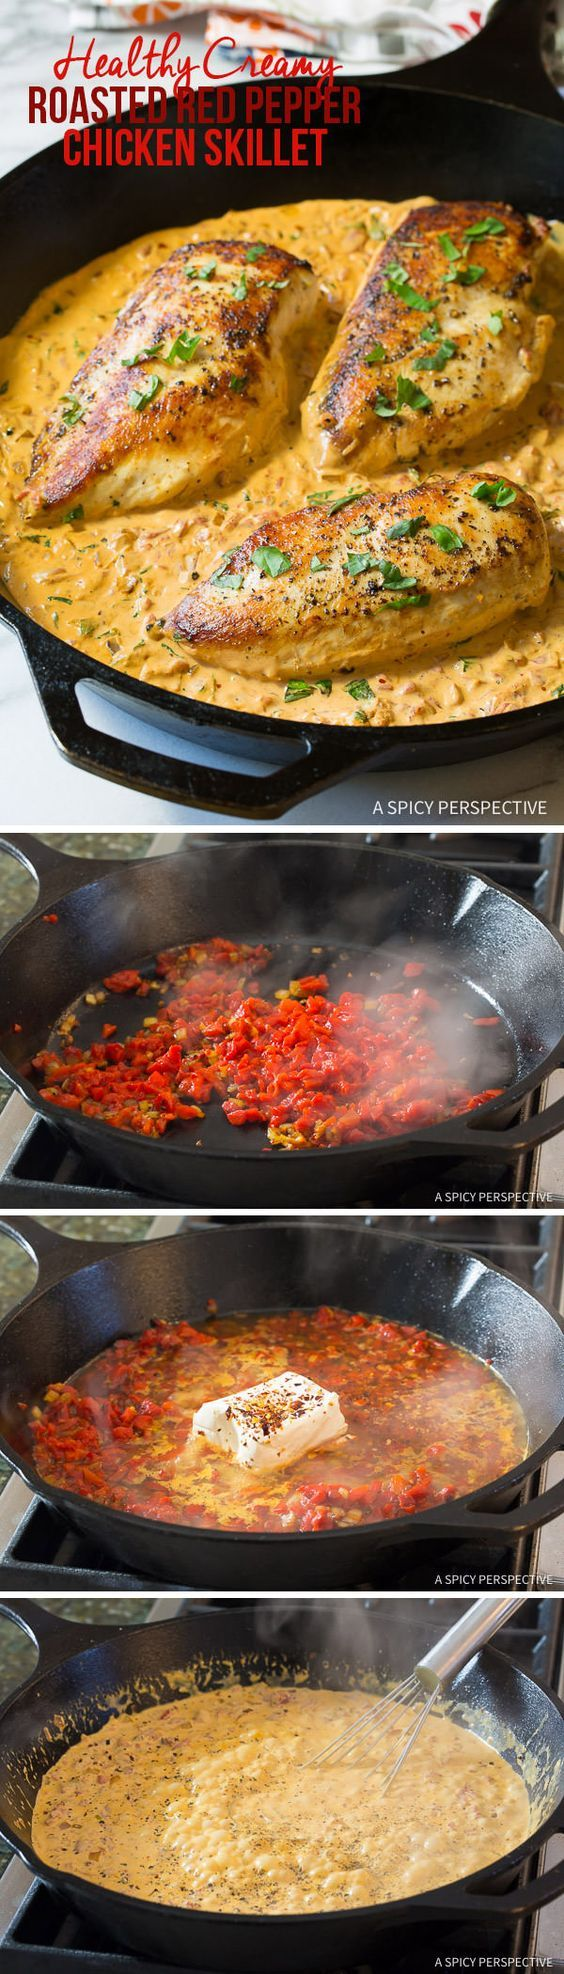 Easy to Make Healthy & Creamy Roasted Red Pepper Chicken Skillet Recipe | ASpicyPerspective.com